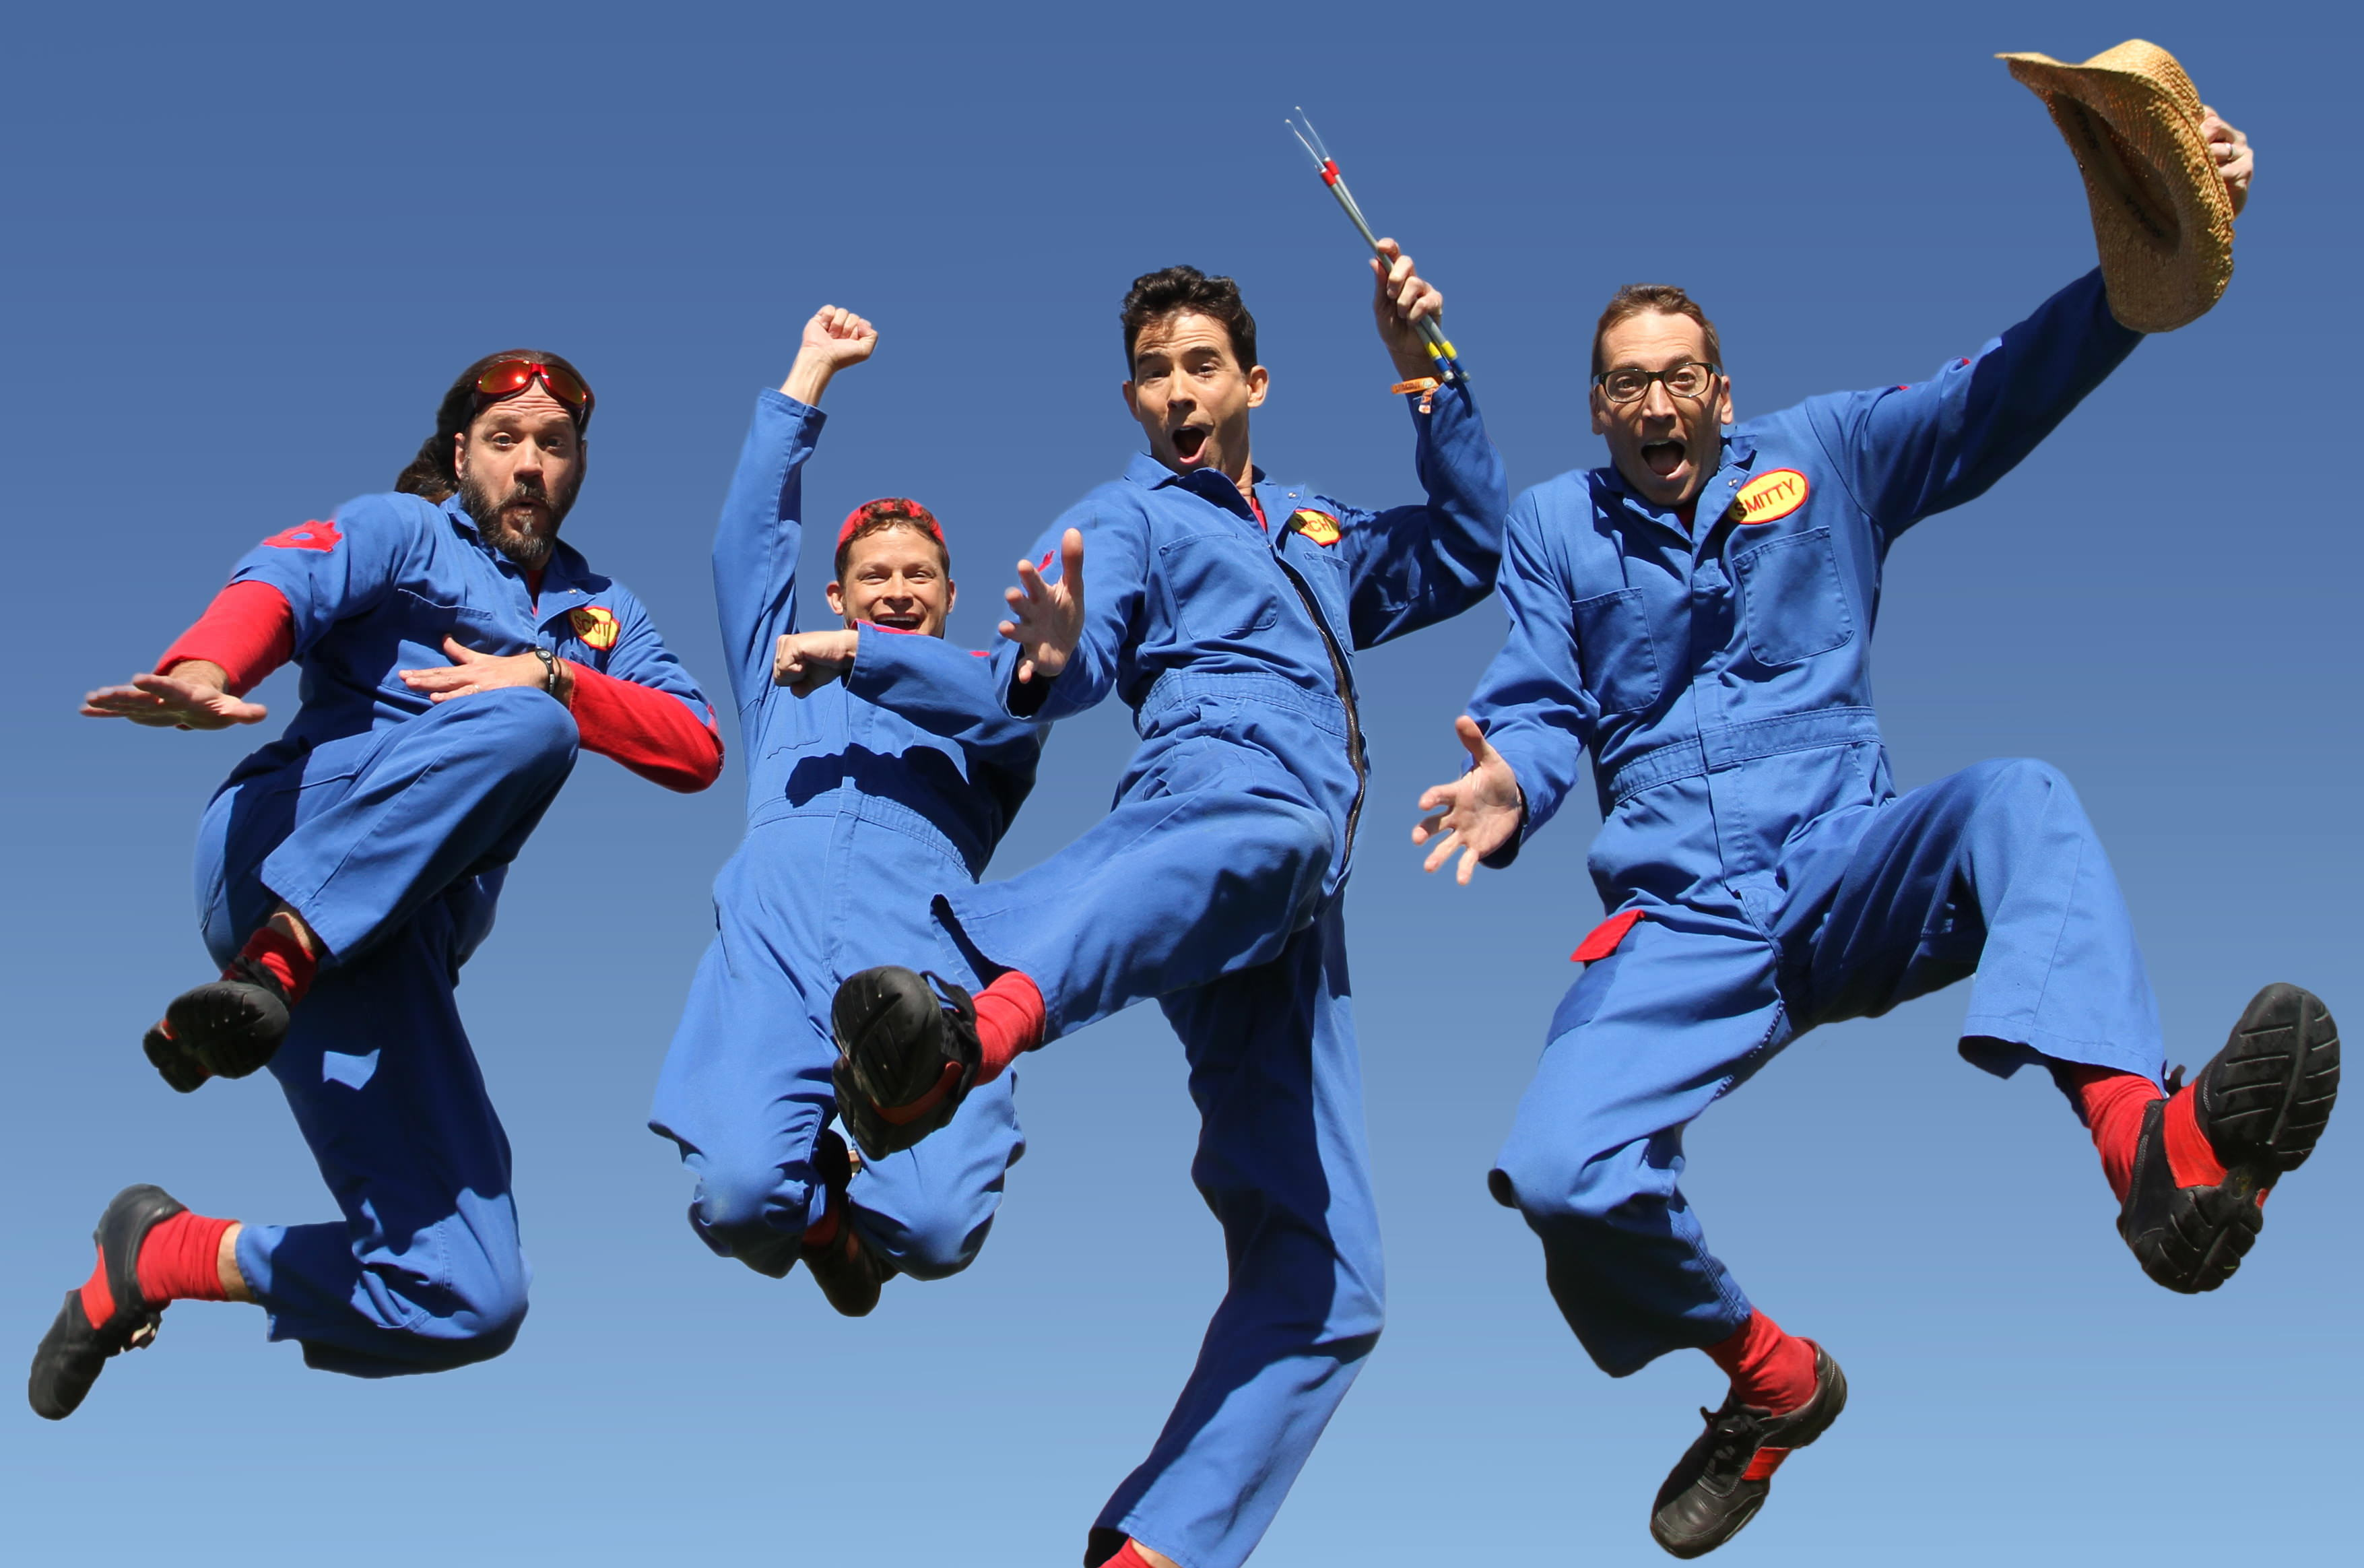 imagination Movers press photo